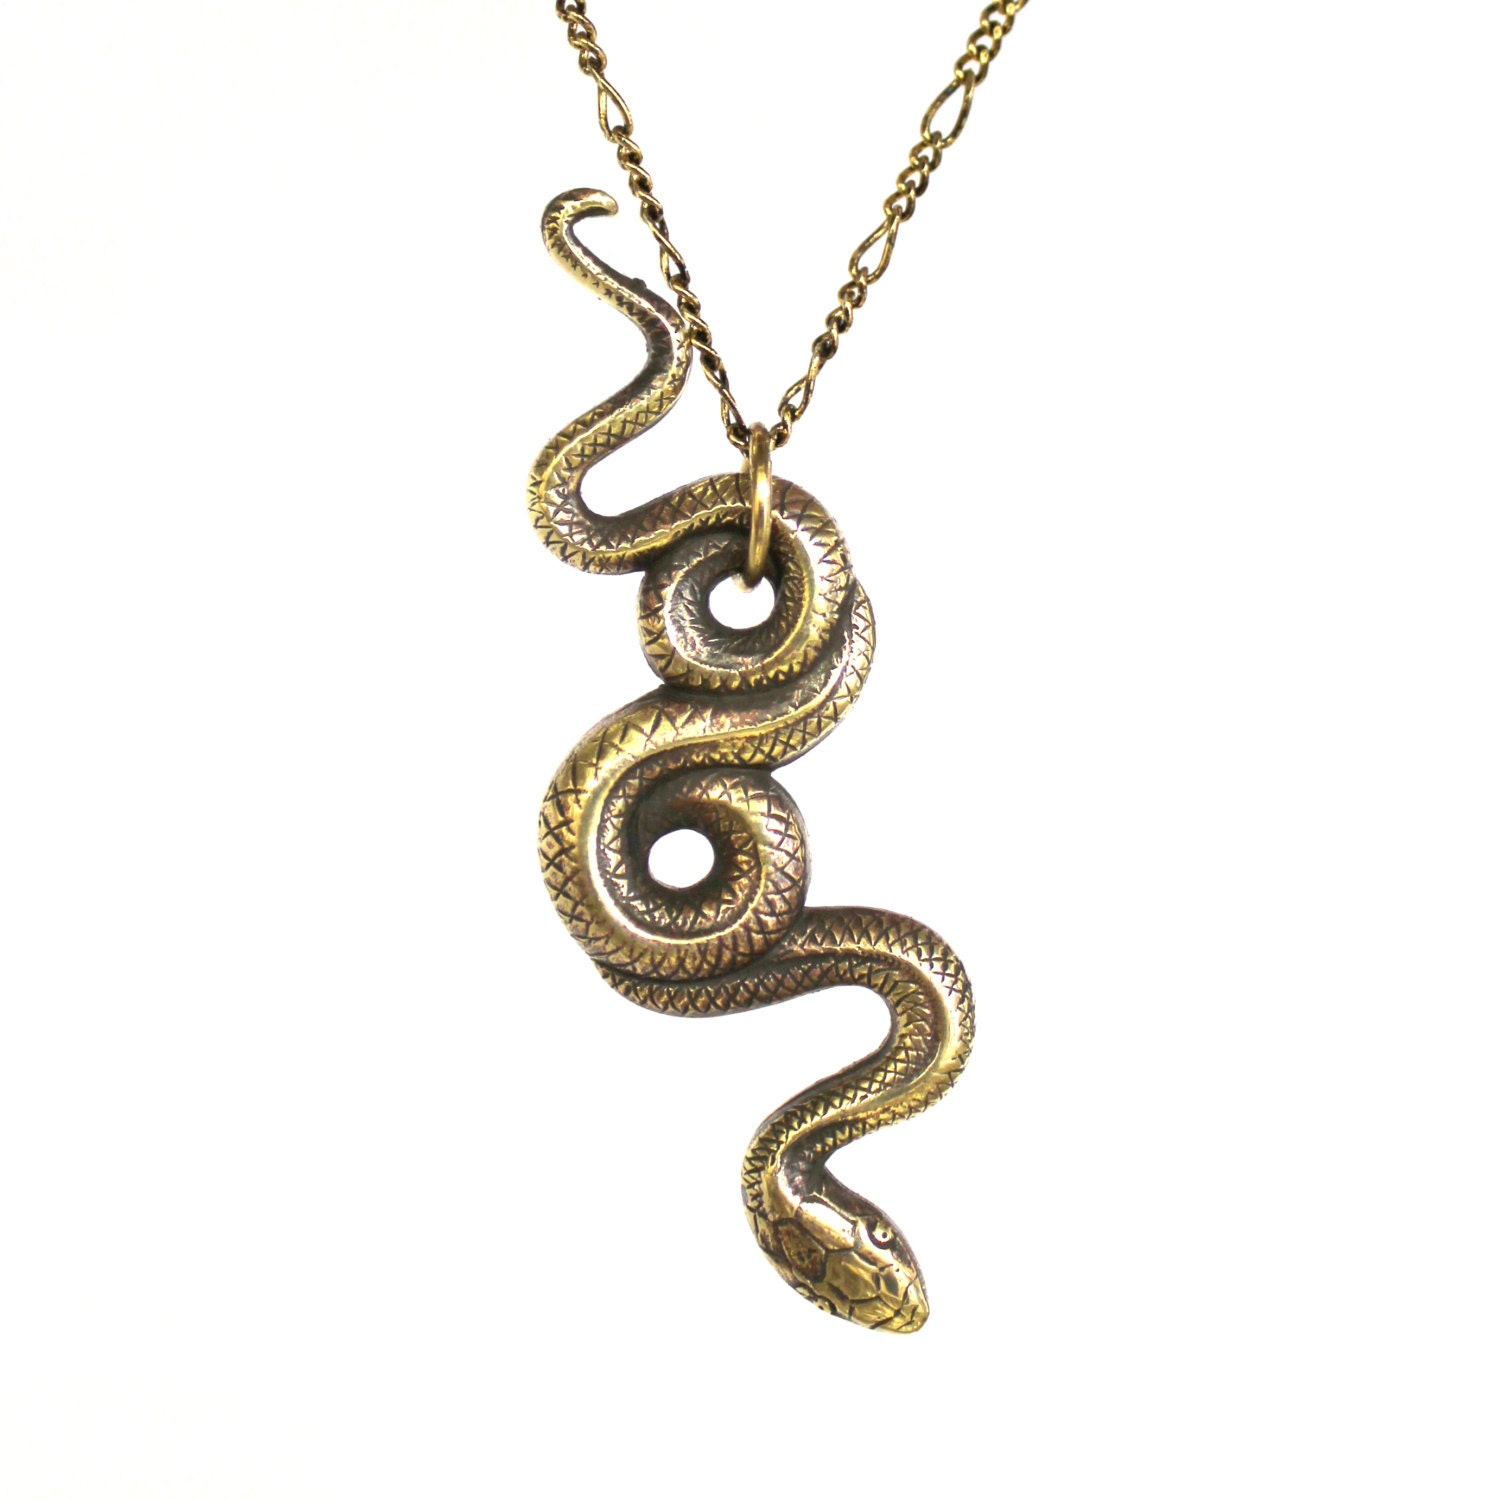 Garden snake necklace bronze snake pendant necklace serpent zoom aloadofball Image collections